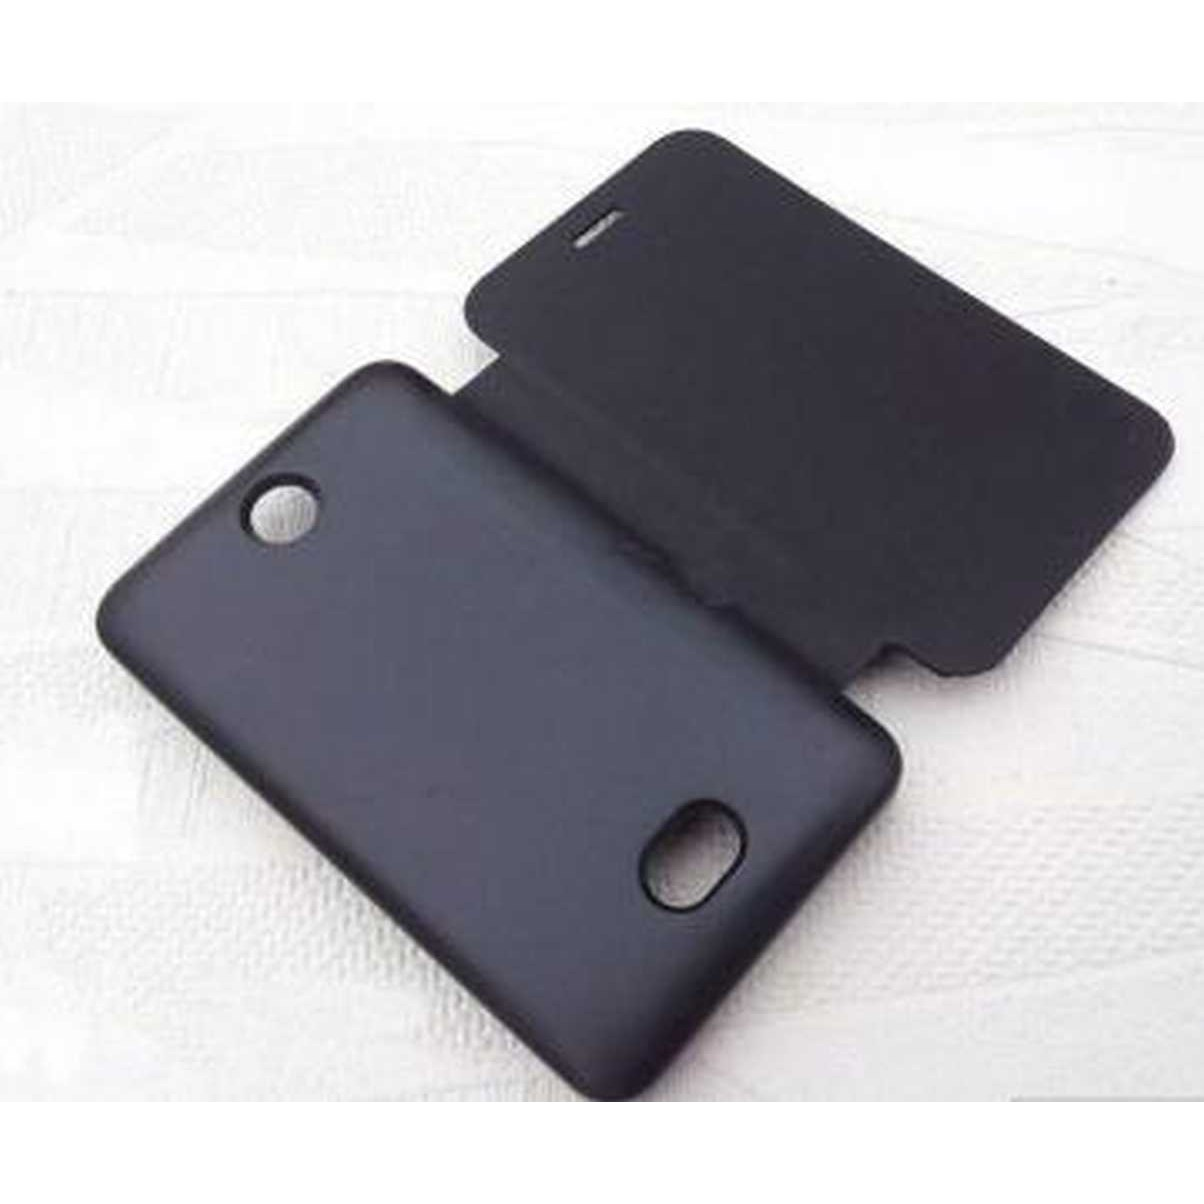 sports shoes 3eccf 72b91 Flip Cover for Nokia Asha 501 - Black